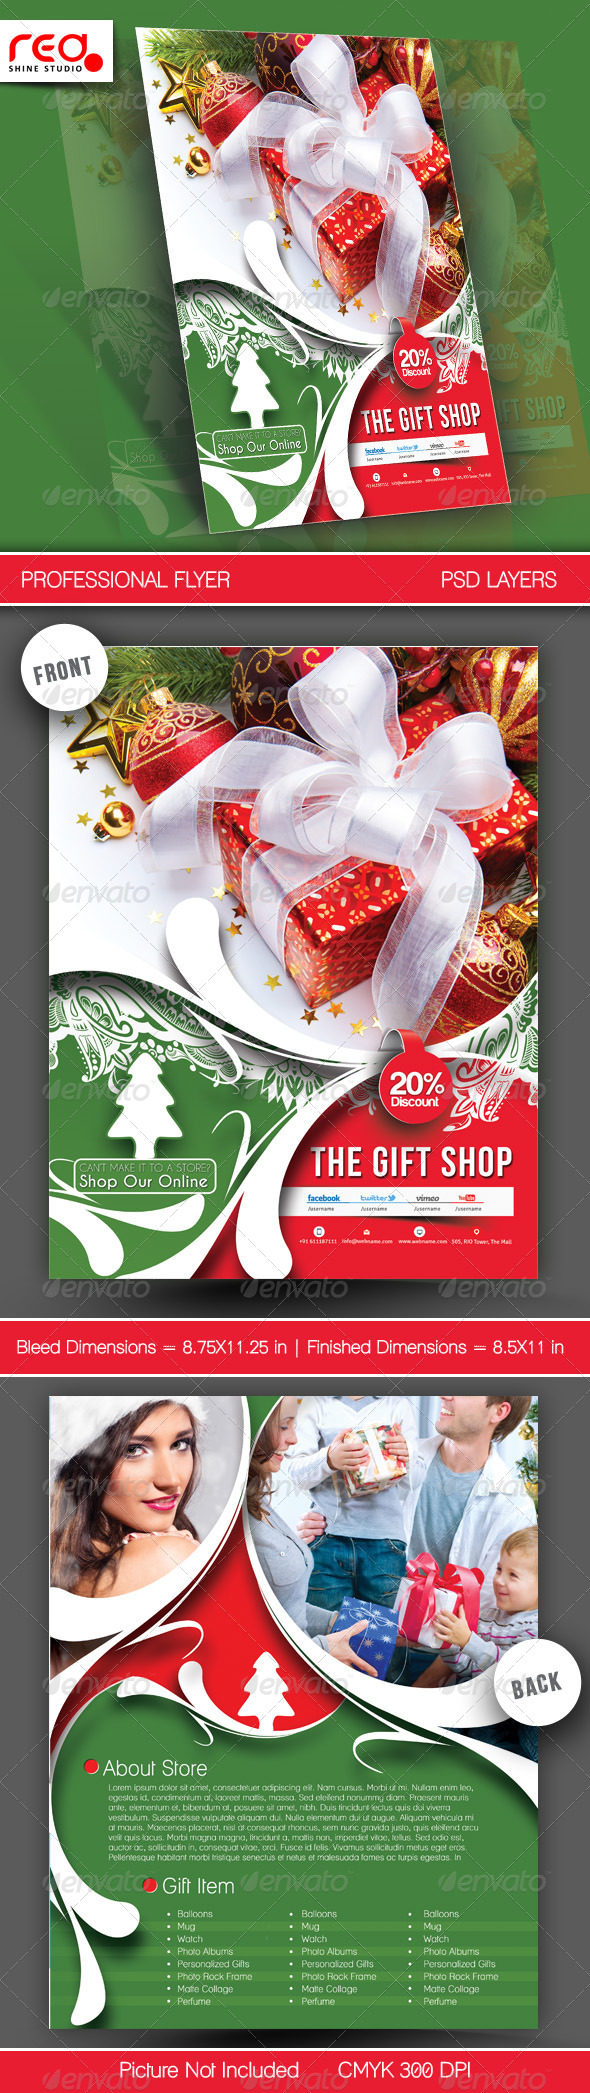 Gift Shop Flyer Poster Template 2